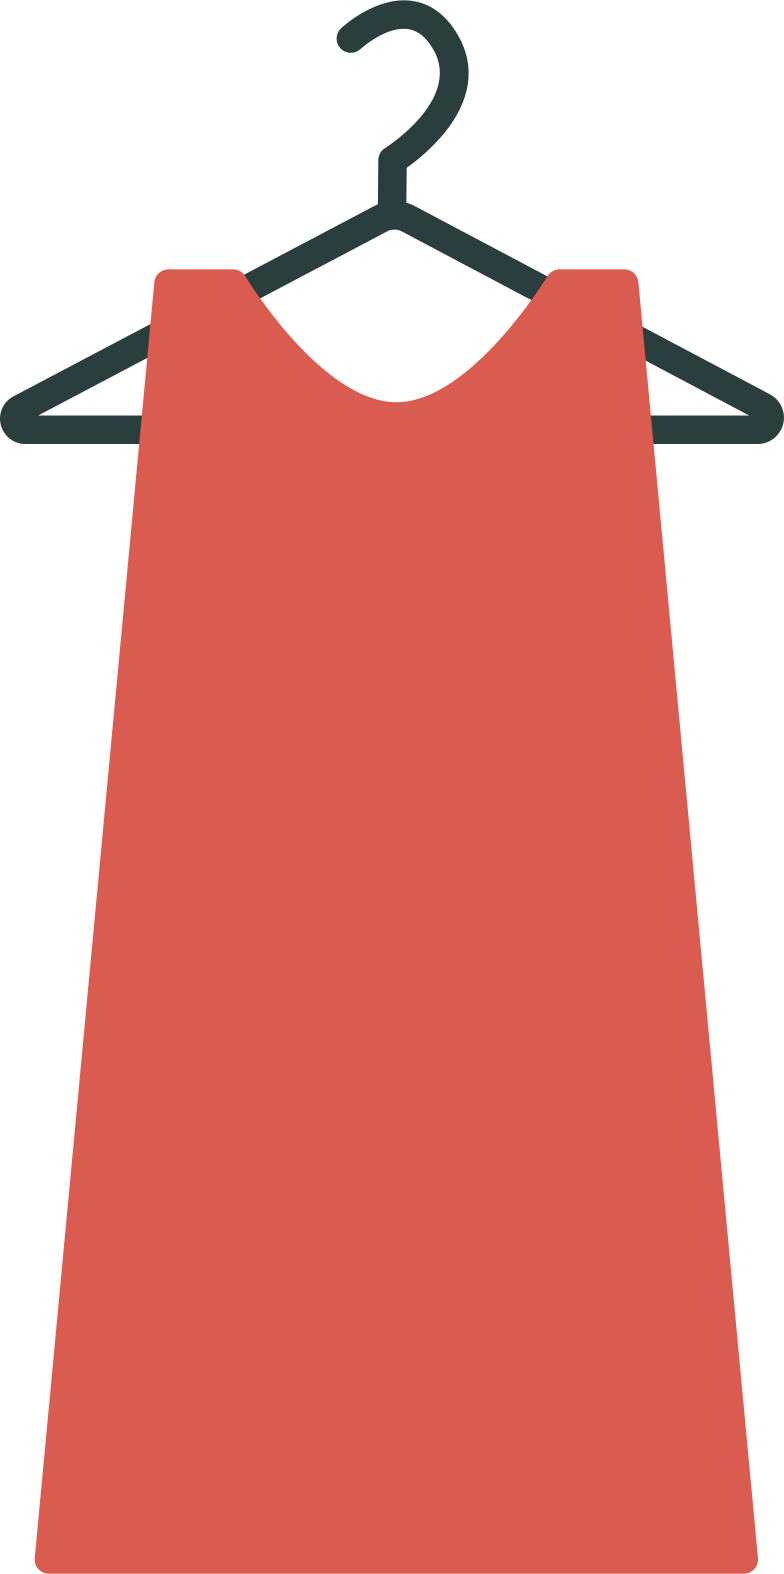 style hanger with dress Vector images in PNG and SVG | Icons8 Illustrations